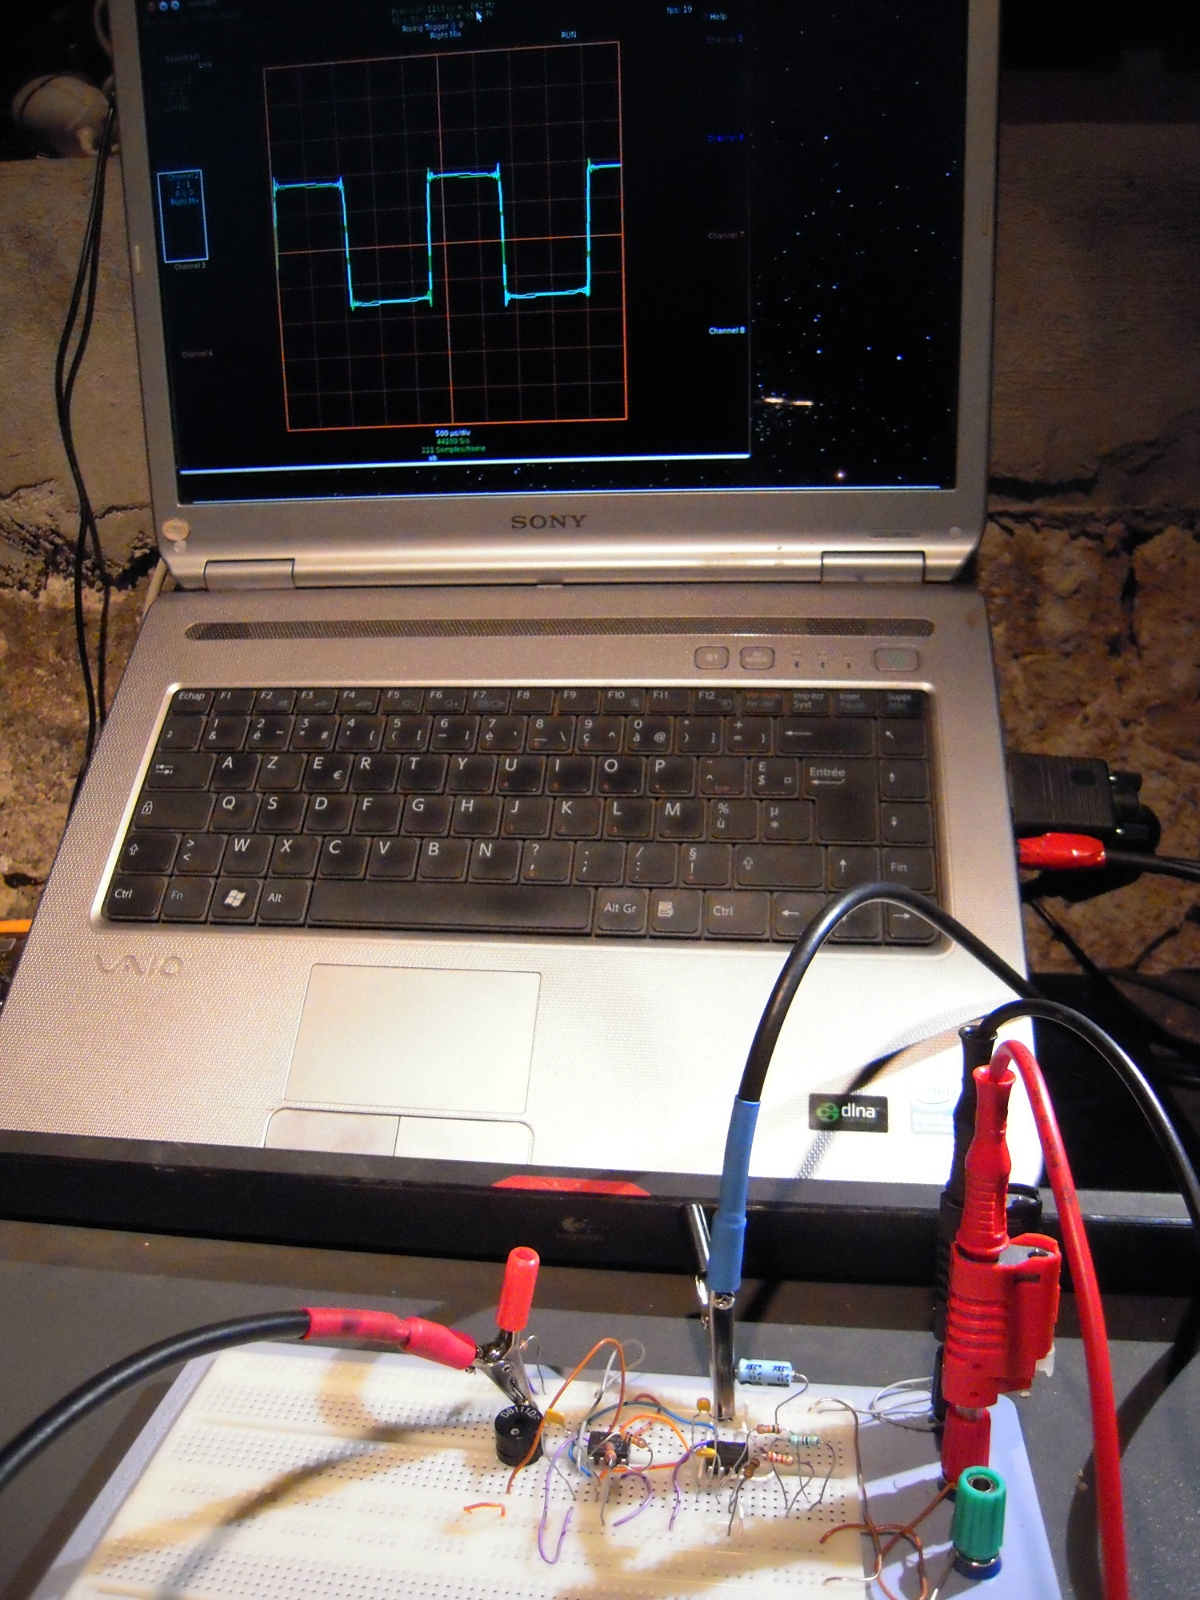 Diy turn your gnulinux computer into a free oscilloscope yann any solutioingenieria Image collections